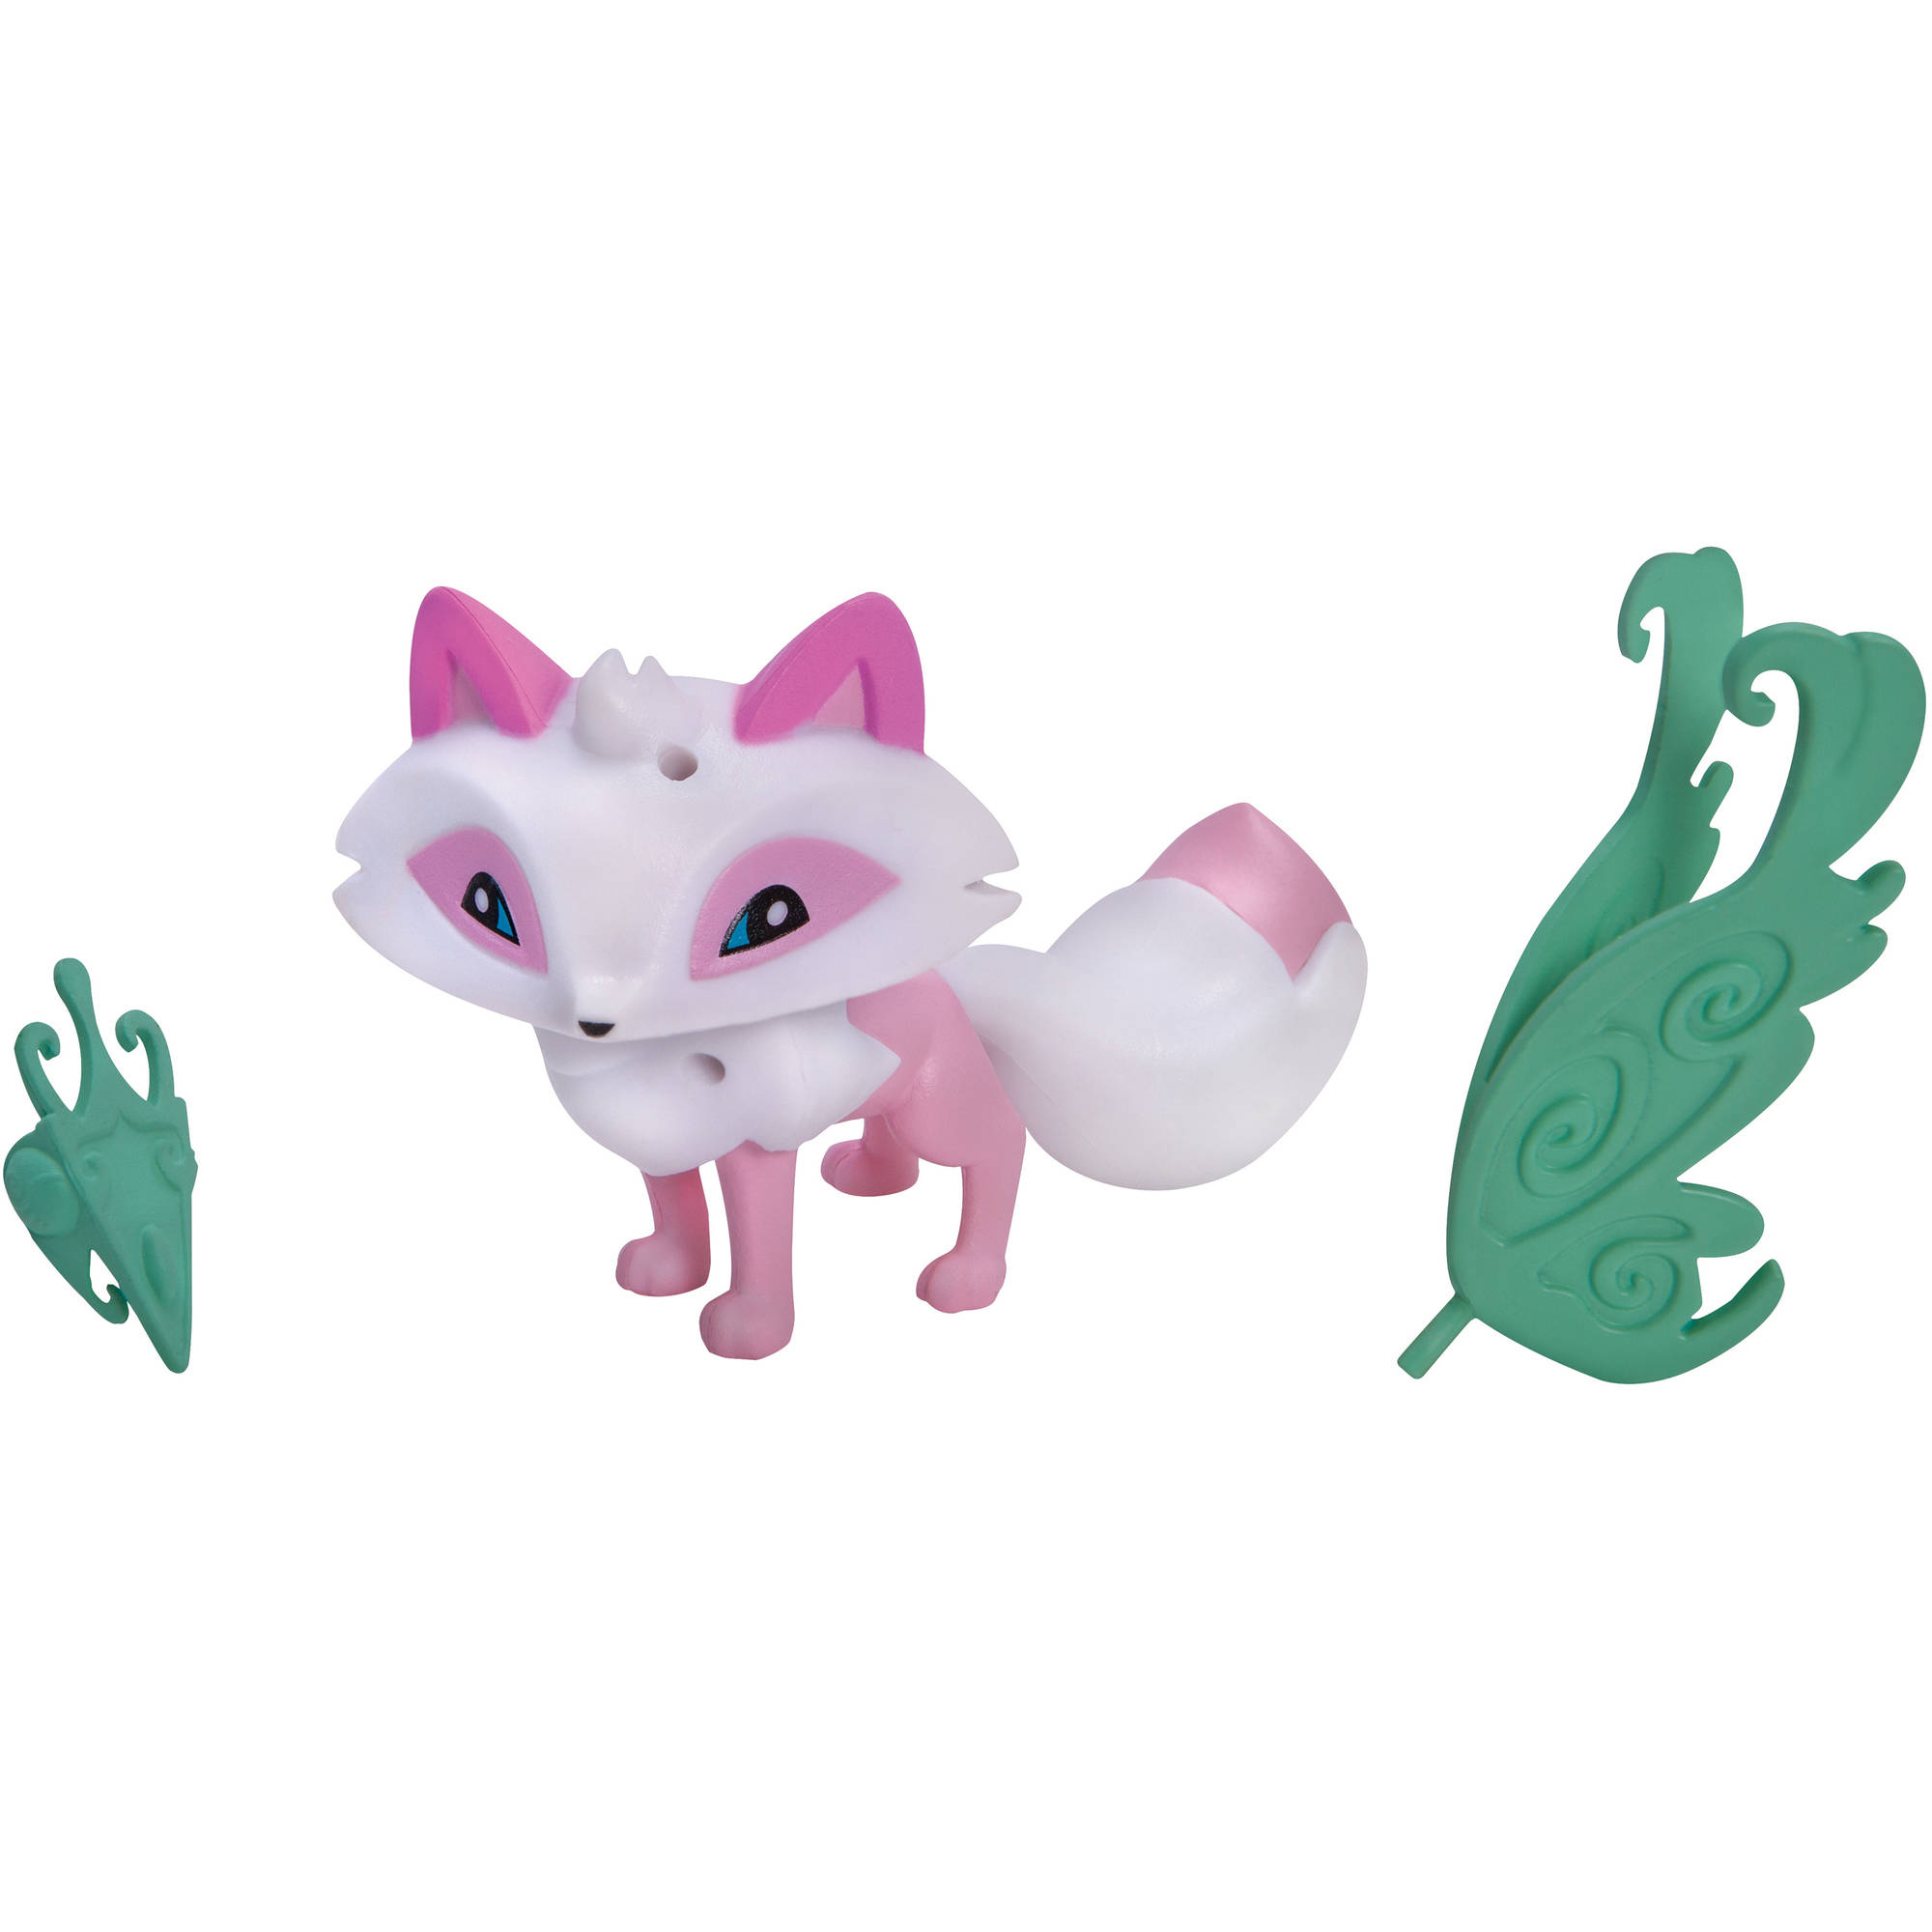 Animal Jam Crystal Palace with Exclusive Figure   Walmart com